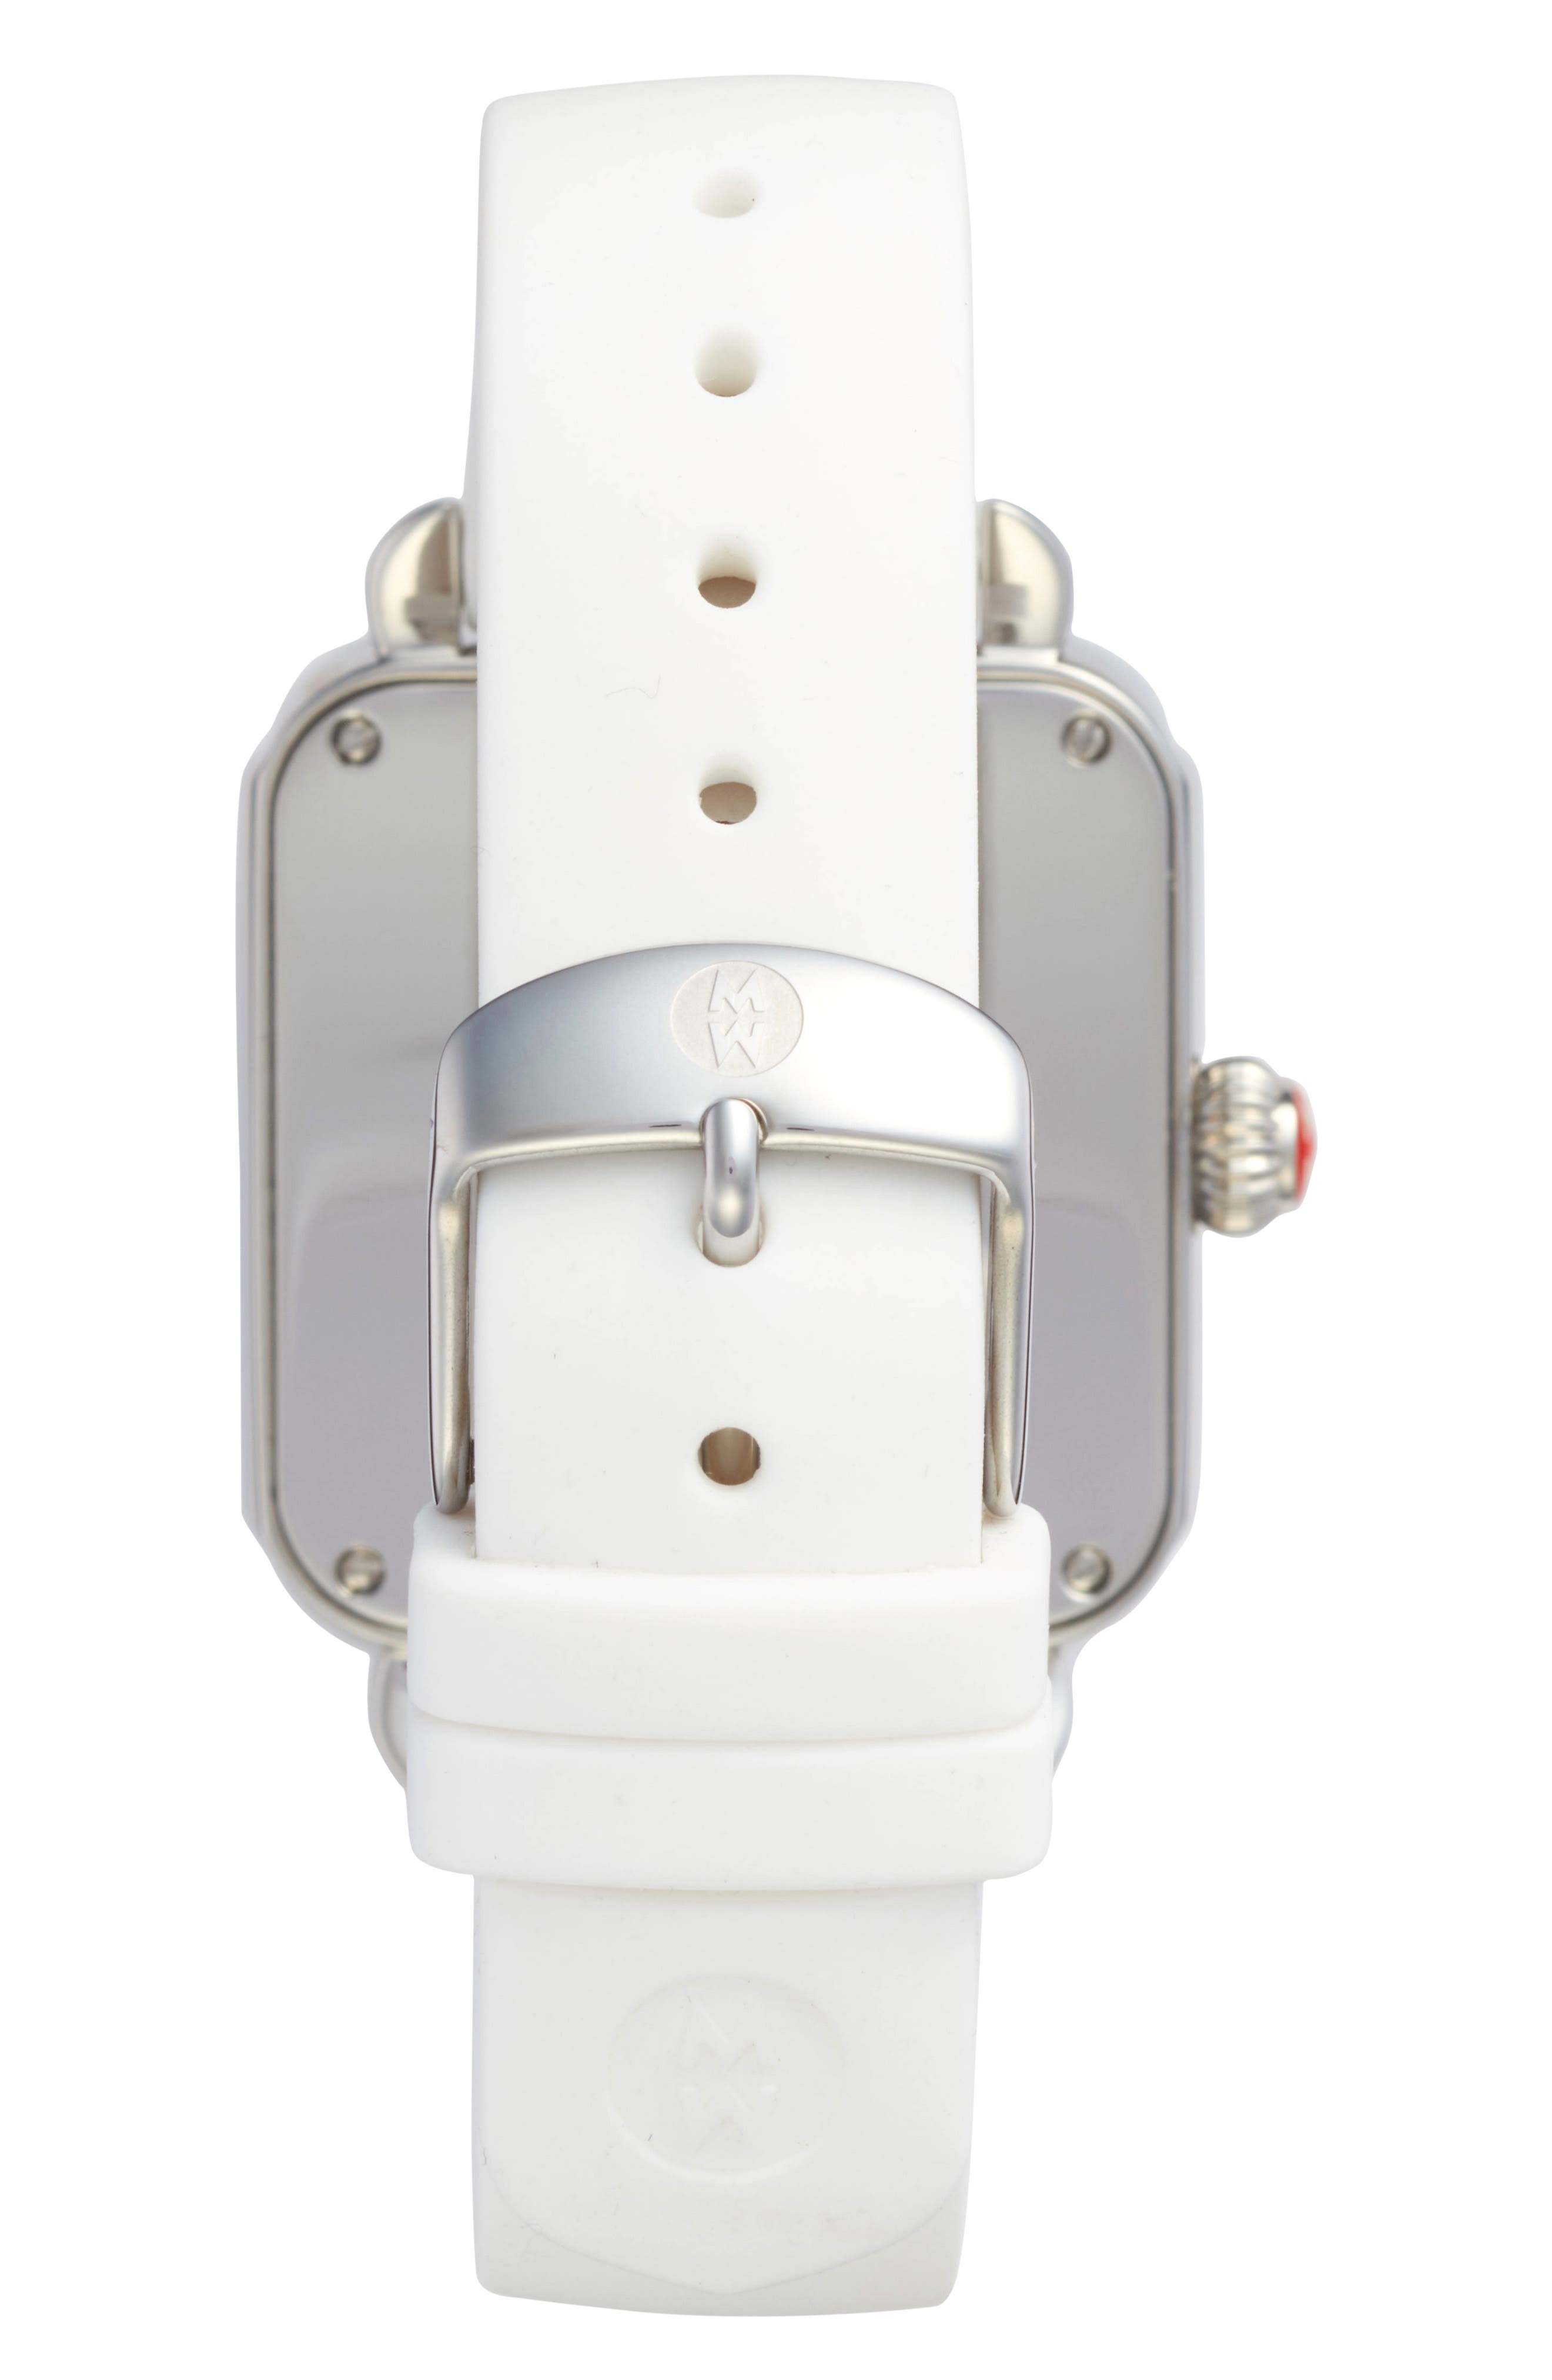 Deco Sport Watch Head & Silicone Strap Watch, 34mm x 36mm,                             Alternate thumbnail 3, color,                             White/ Silver